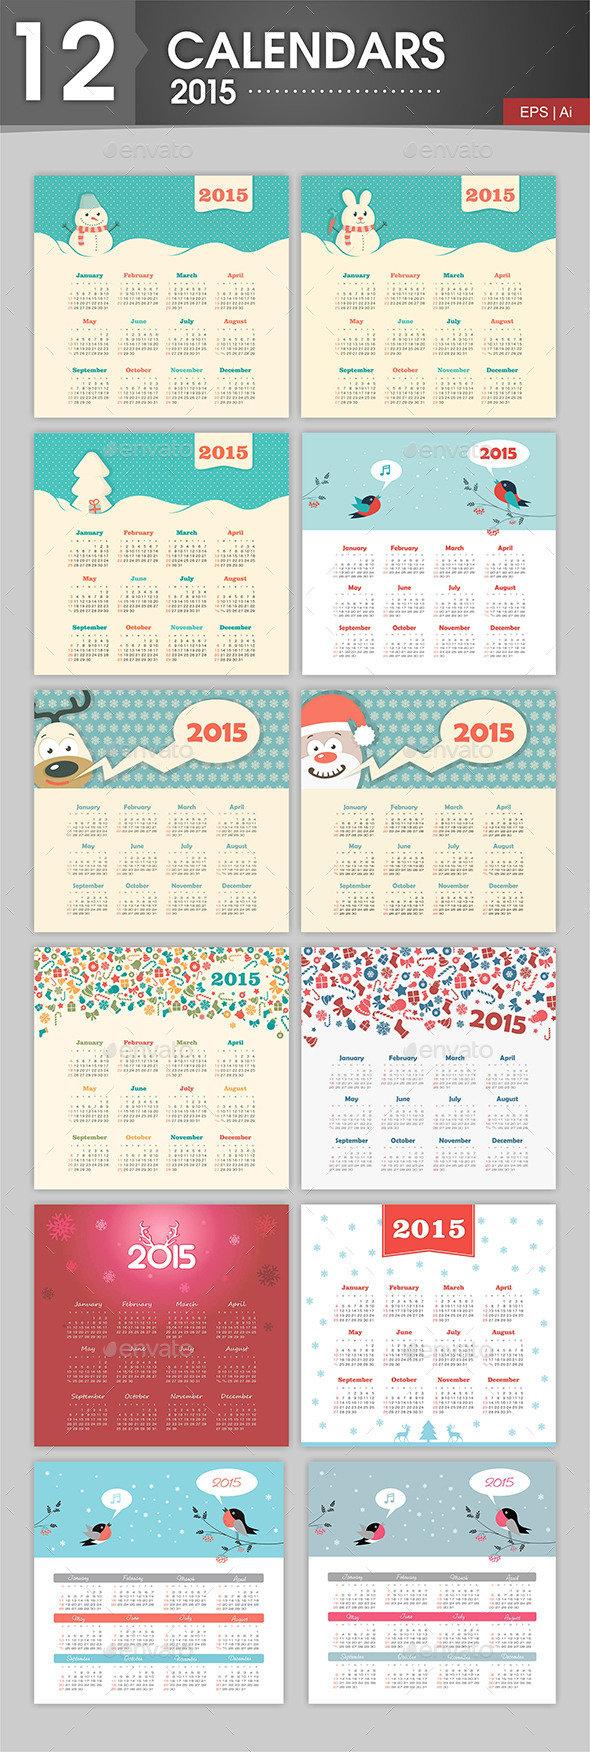 GraphicRiver 12 Calendars 2015 With a Christmas Theme 9516767